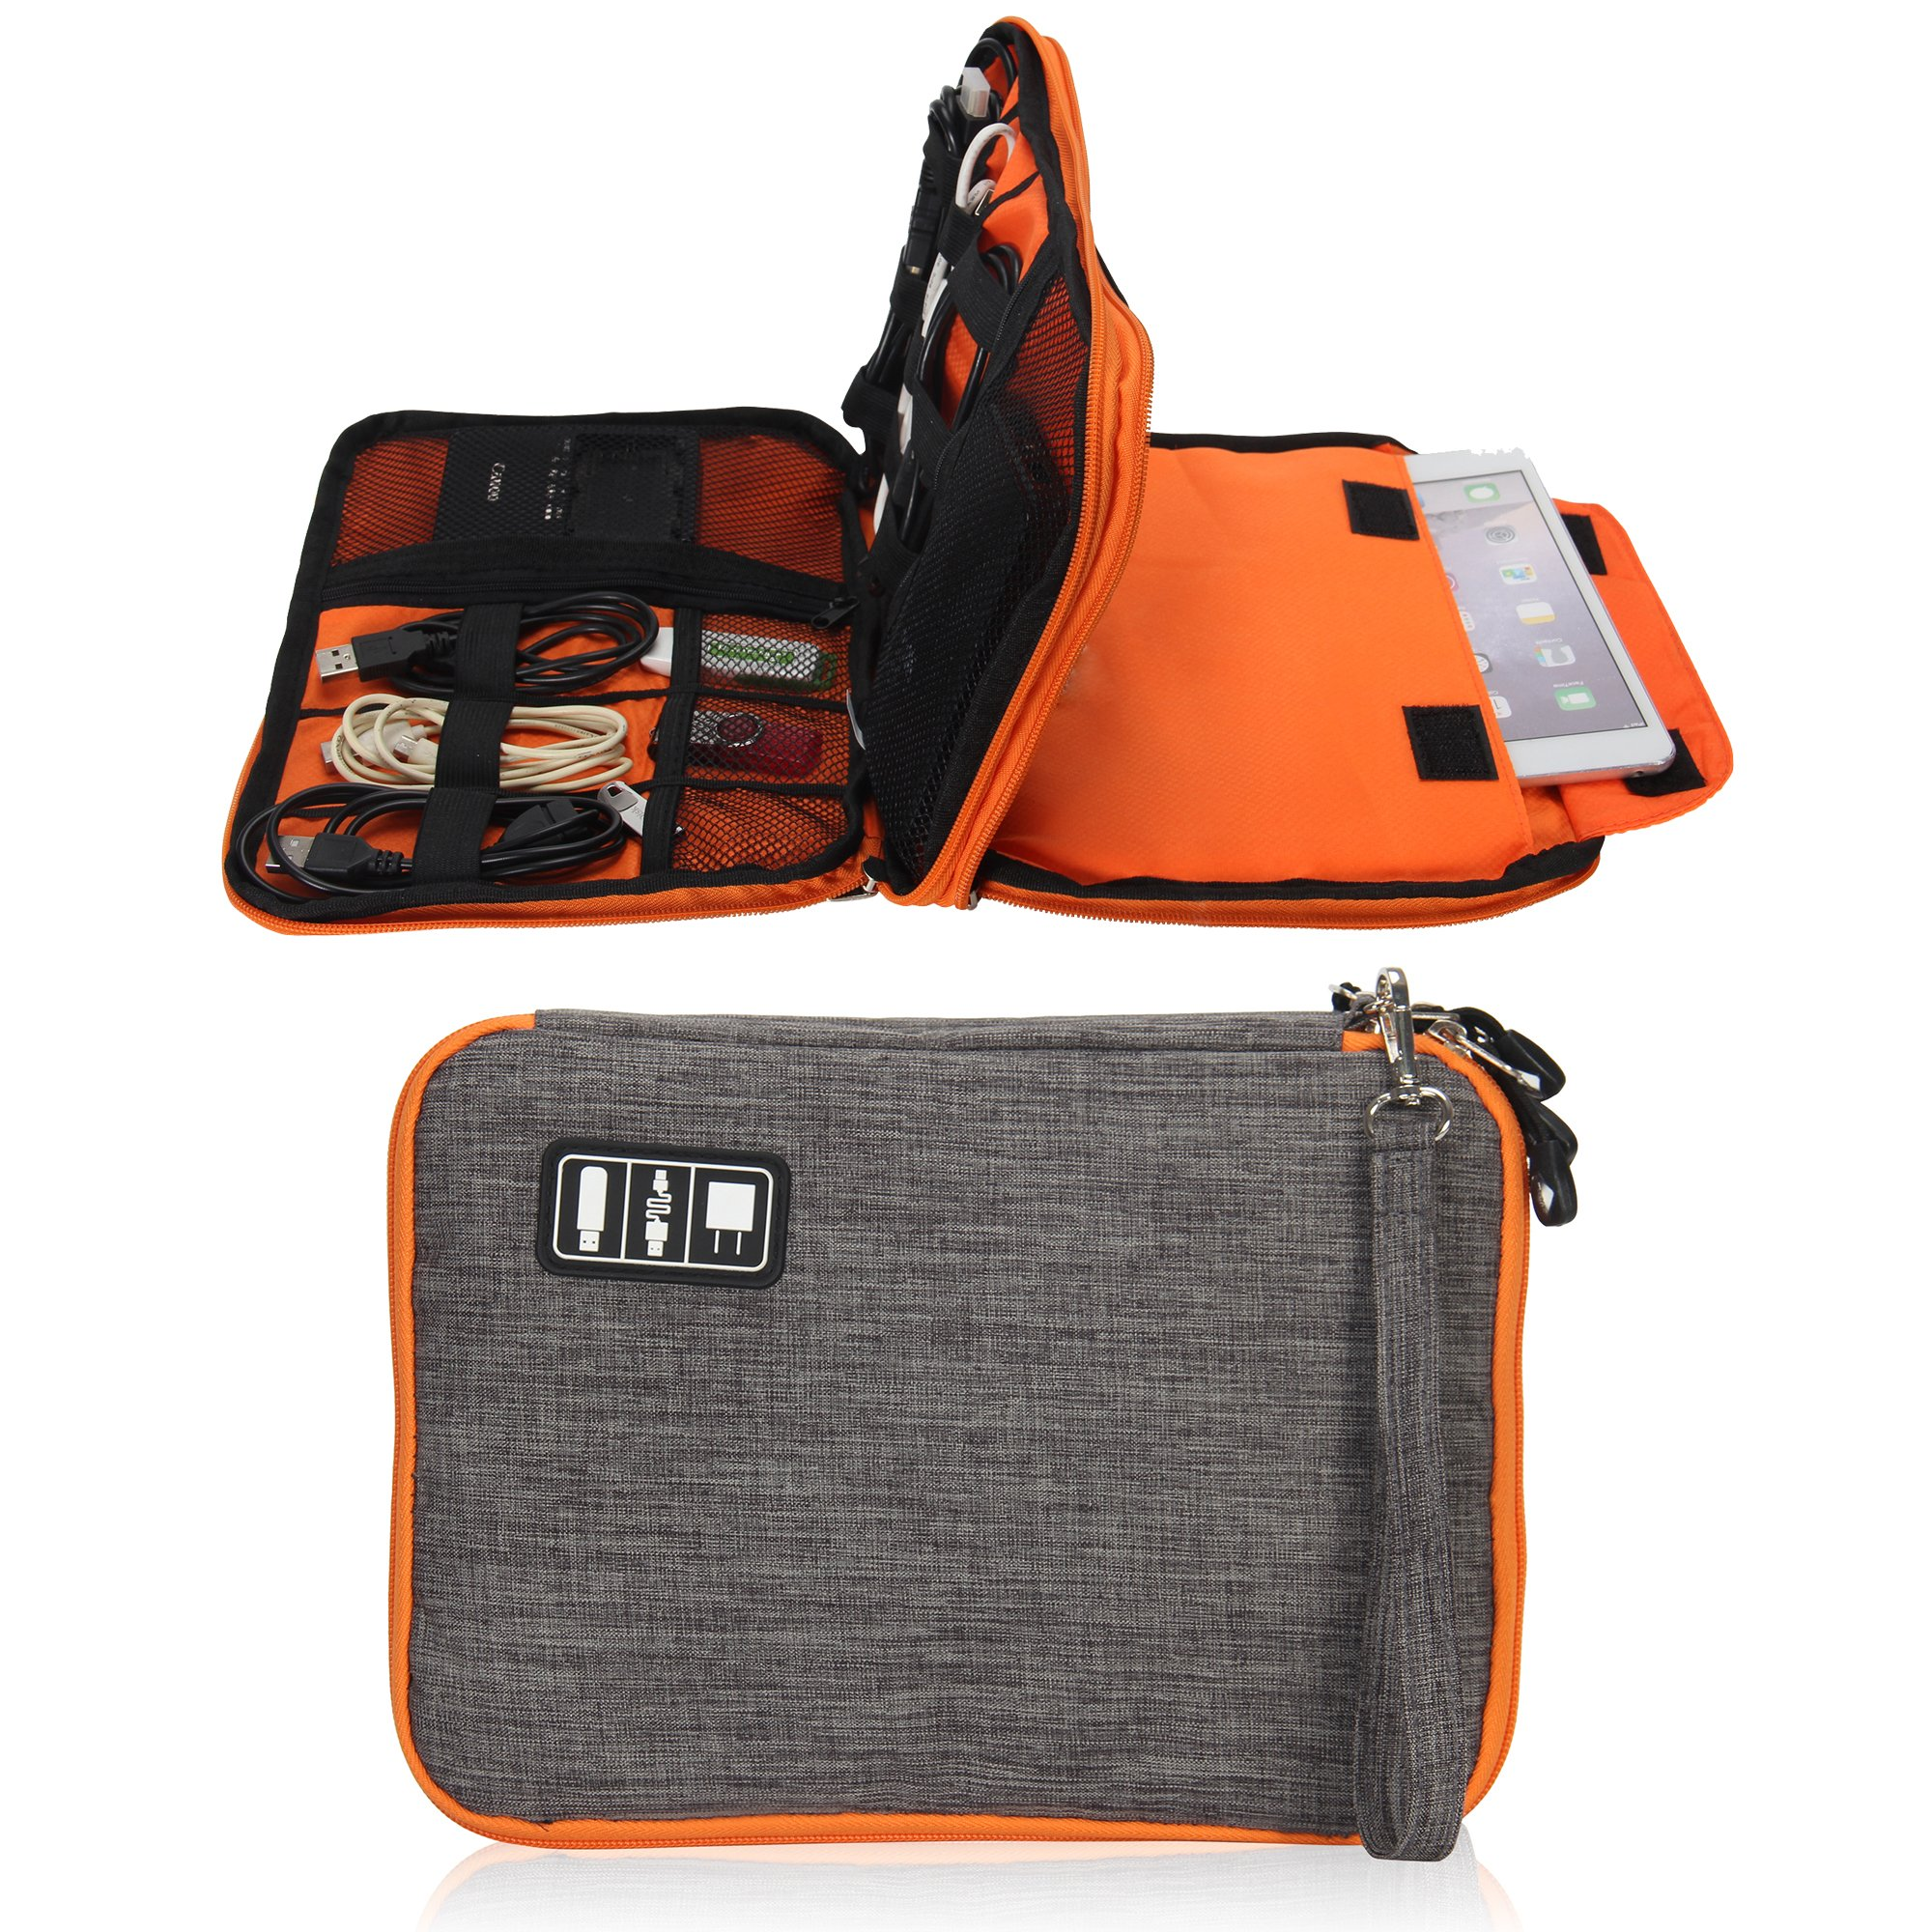 Travel Electronic Organizer Bag Cable Cord Organizer Bag for Various USB Charging Cable iPAD Cellphone